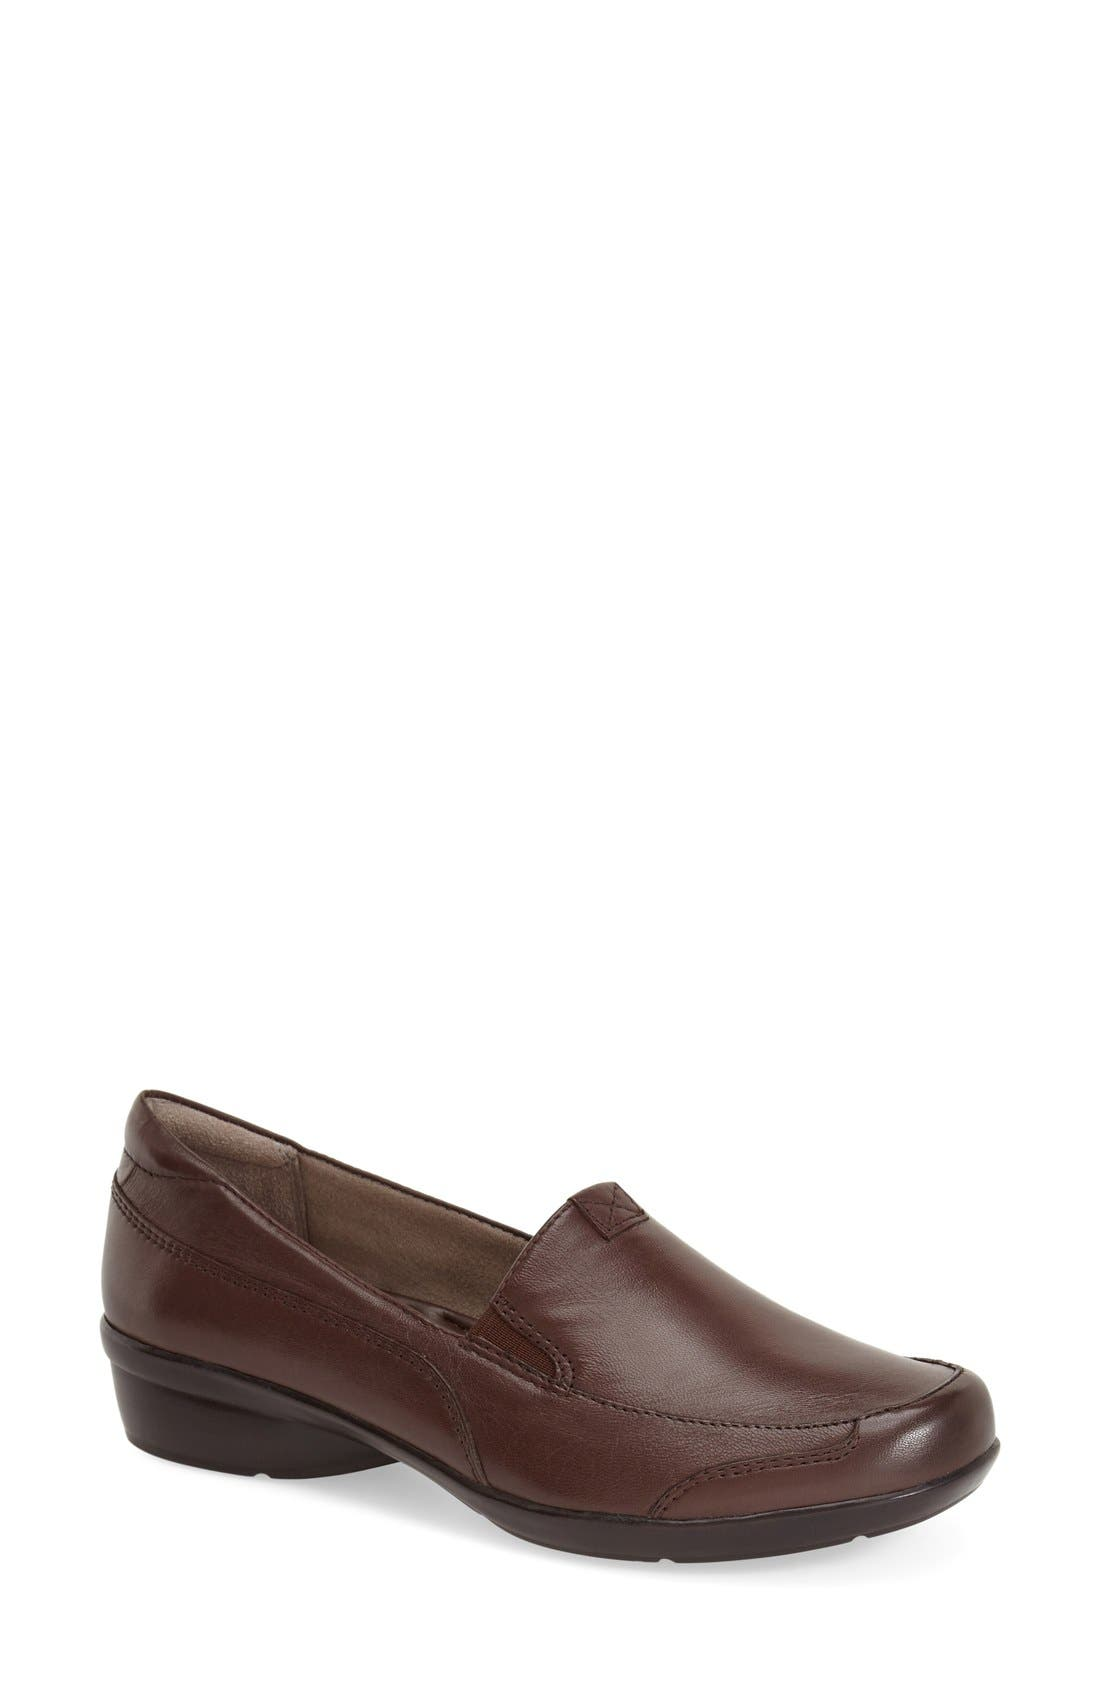 Naturalizer 'Channing' Loafer (Women)